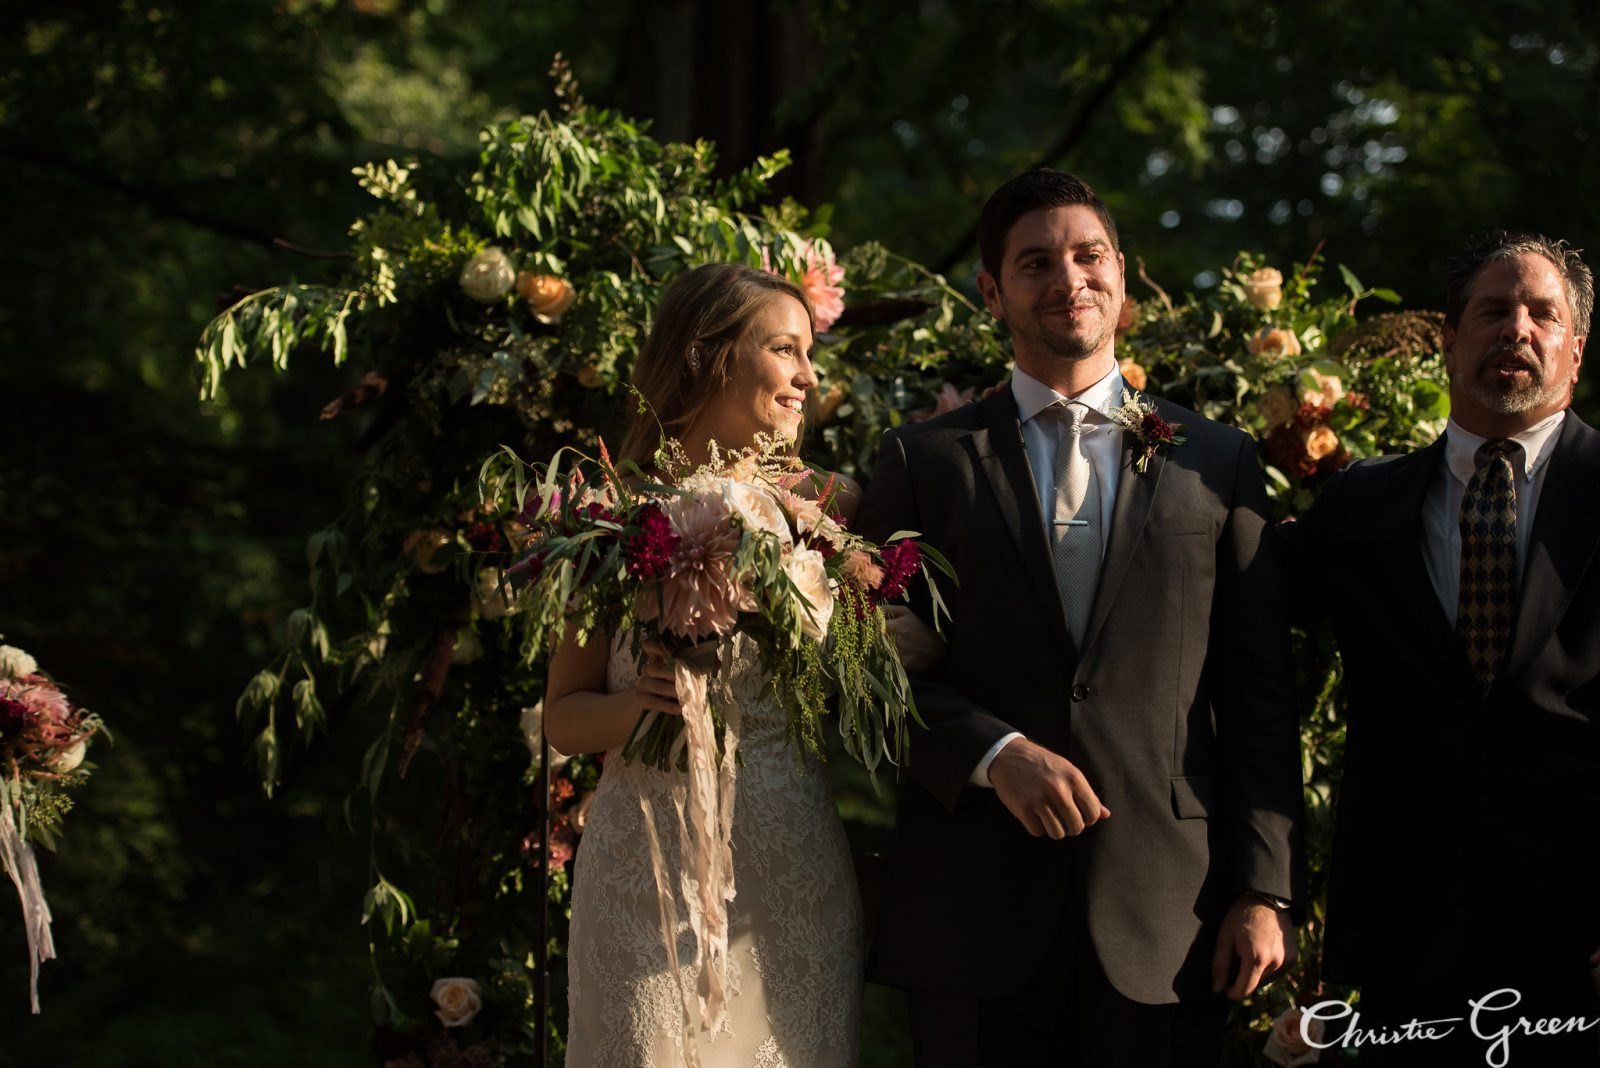 Bride and groom at The Old Mill Wedding Ceremony. Lush Garden Bouquet by Fresh Designs Florist. Photo by Christie Green Photography